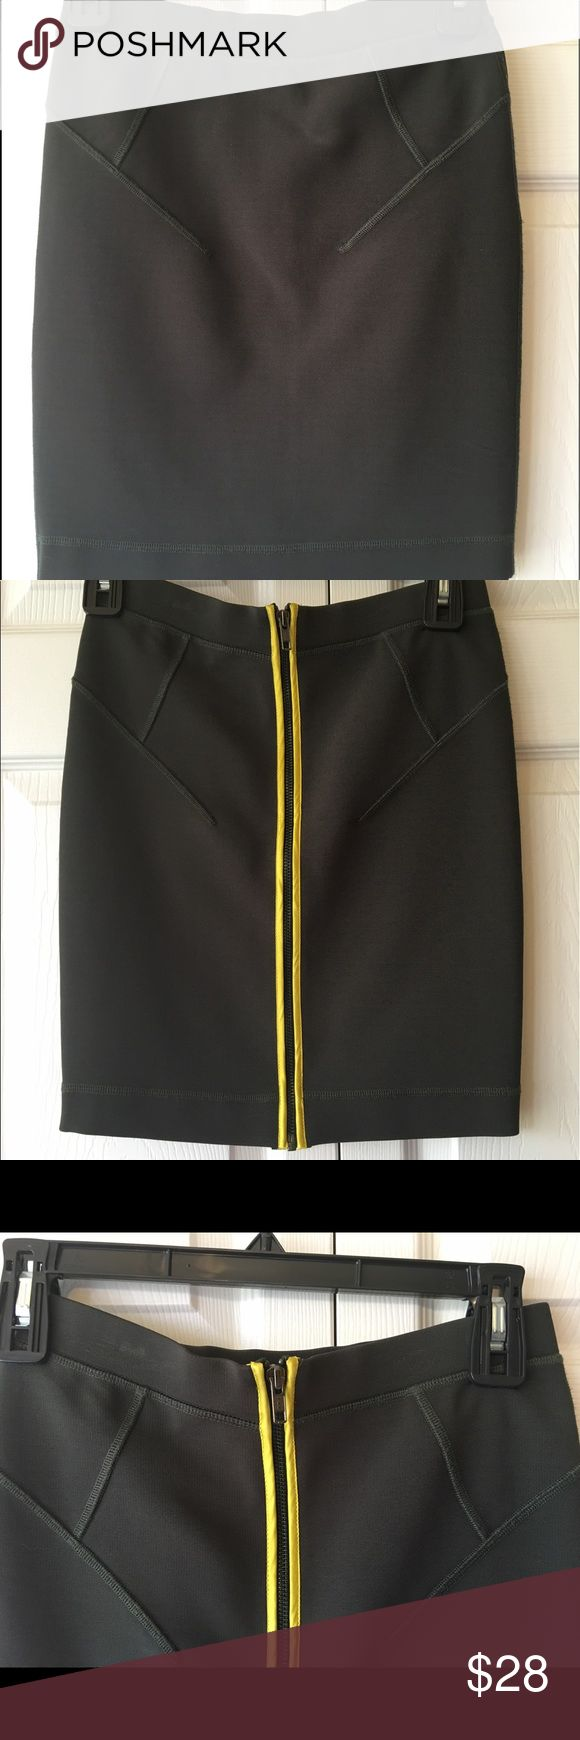 """French Connection Bandage Skirt French Connection Bodycon Skirt with yellow zipper detail.   Cute with tucked in floral top  Full length: 17"""" French Connection Skirts Pencil"""